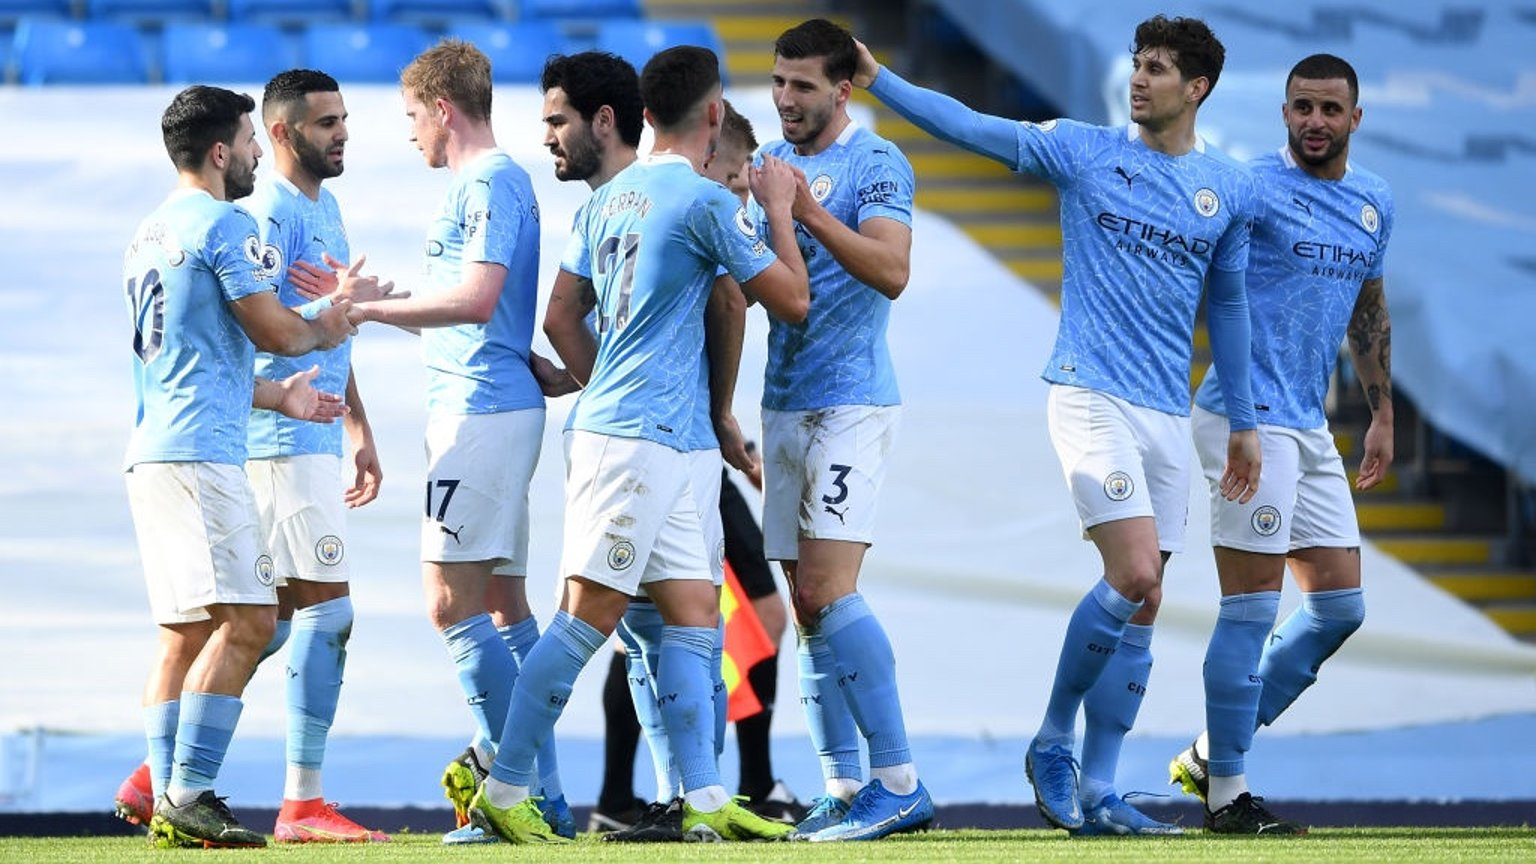 GROUP HUG: The players gather to congratulate Dias and De Bruyne after the opener.